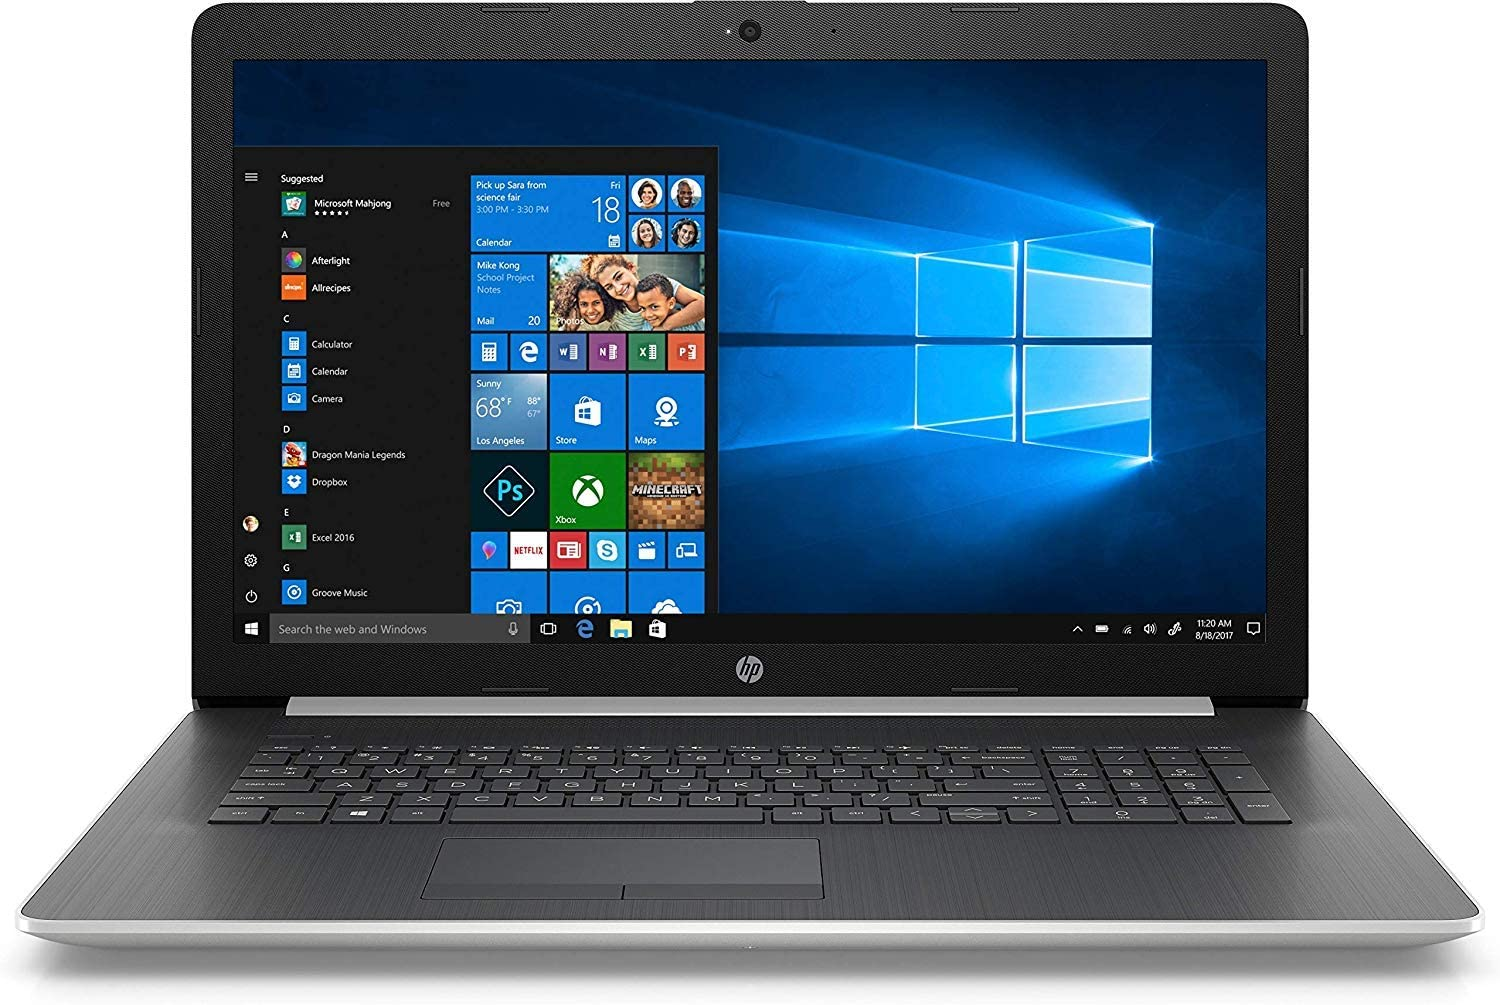 "HP 17.3"" HD + (1600x900) Flagship Laptop, Intel Core i7-8550U Processor, 4GB RAM + 16GB Intel Optane, 2TB Hard Drive, DVD, 802.11ac, Bluetooth 4.2, HDMI, USB 3.1, Windows 10 Home (Natural Silver)"